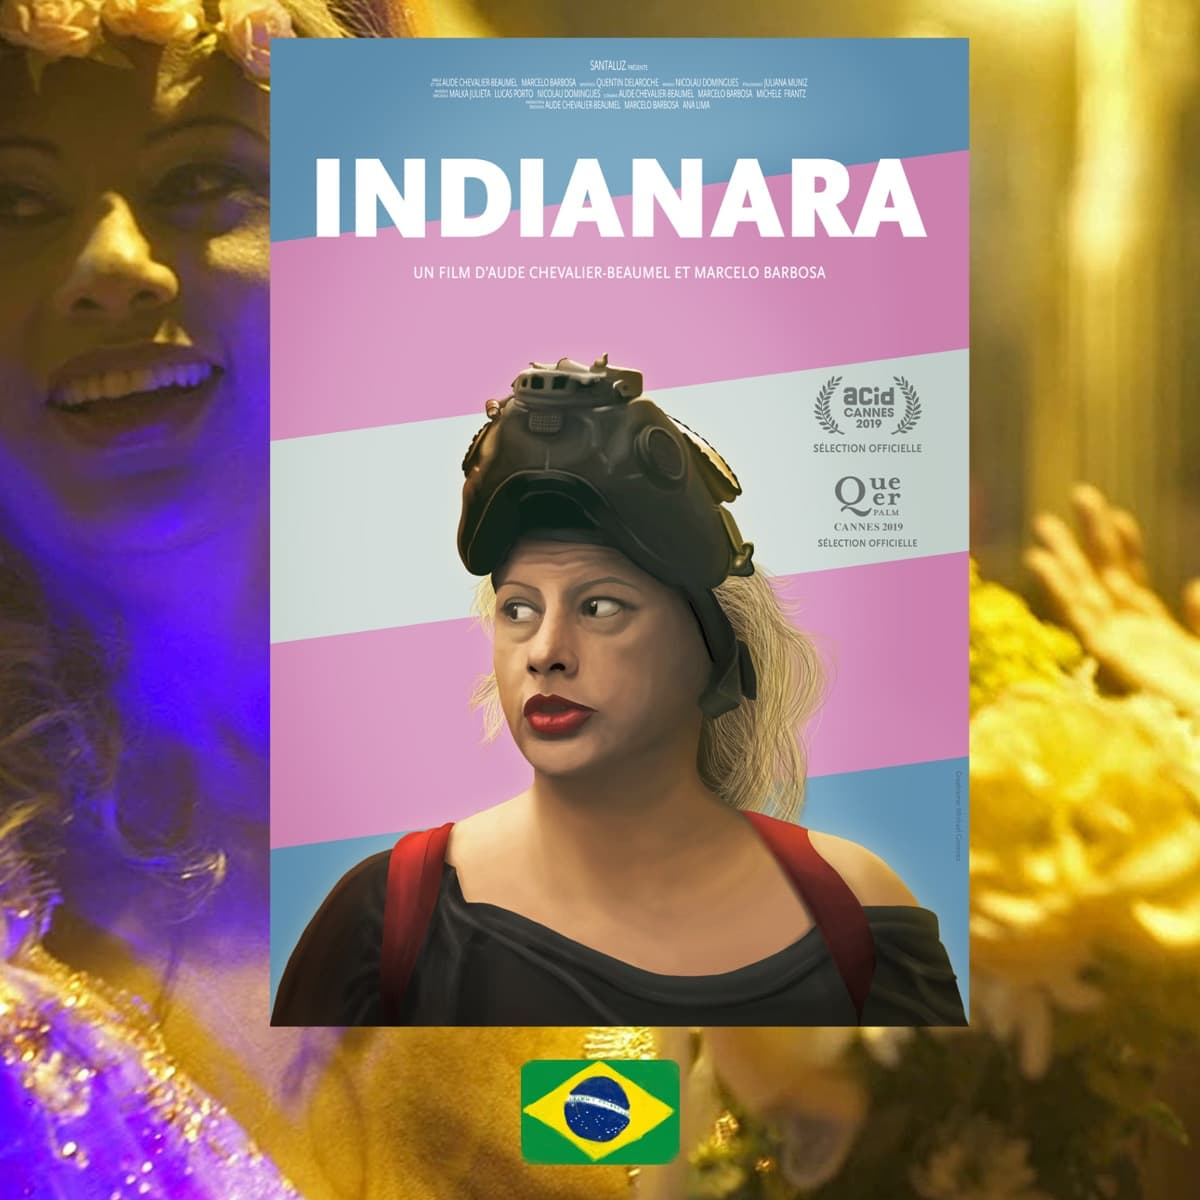 Indianara, Marcelo Barbosa, Aude Chevalier-Beaumel, Film poster